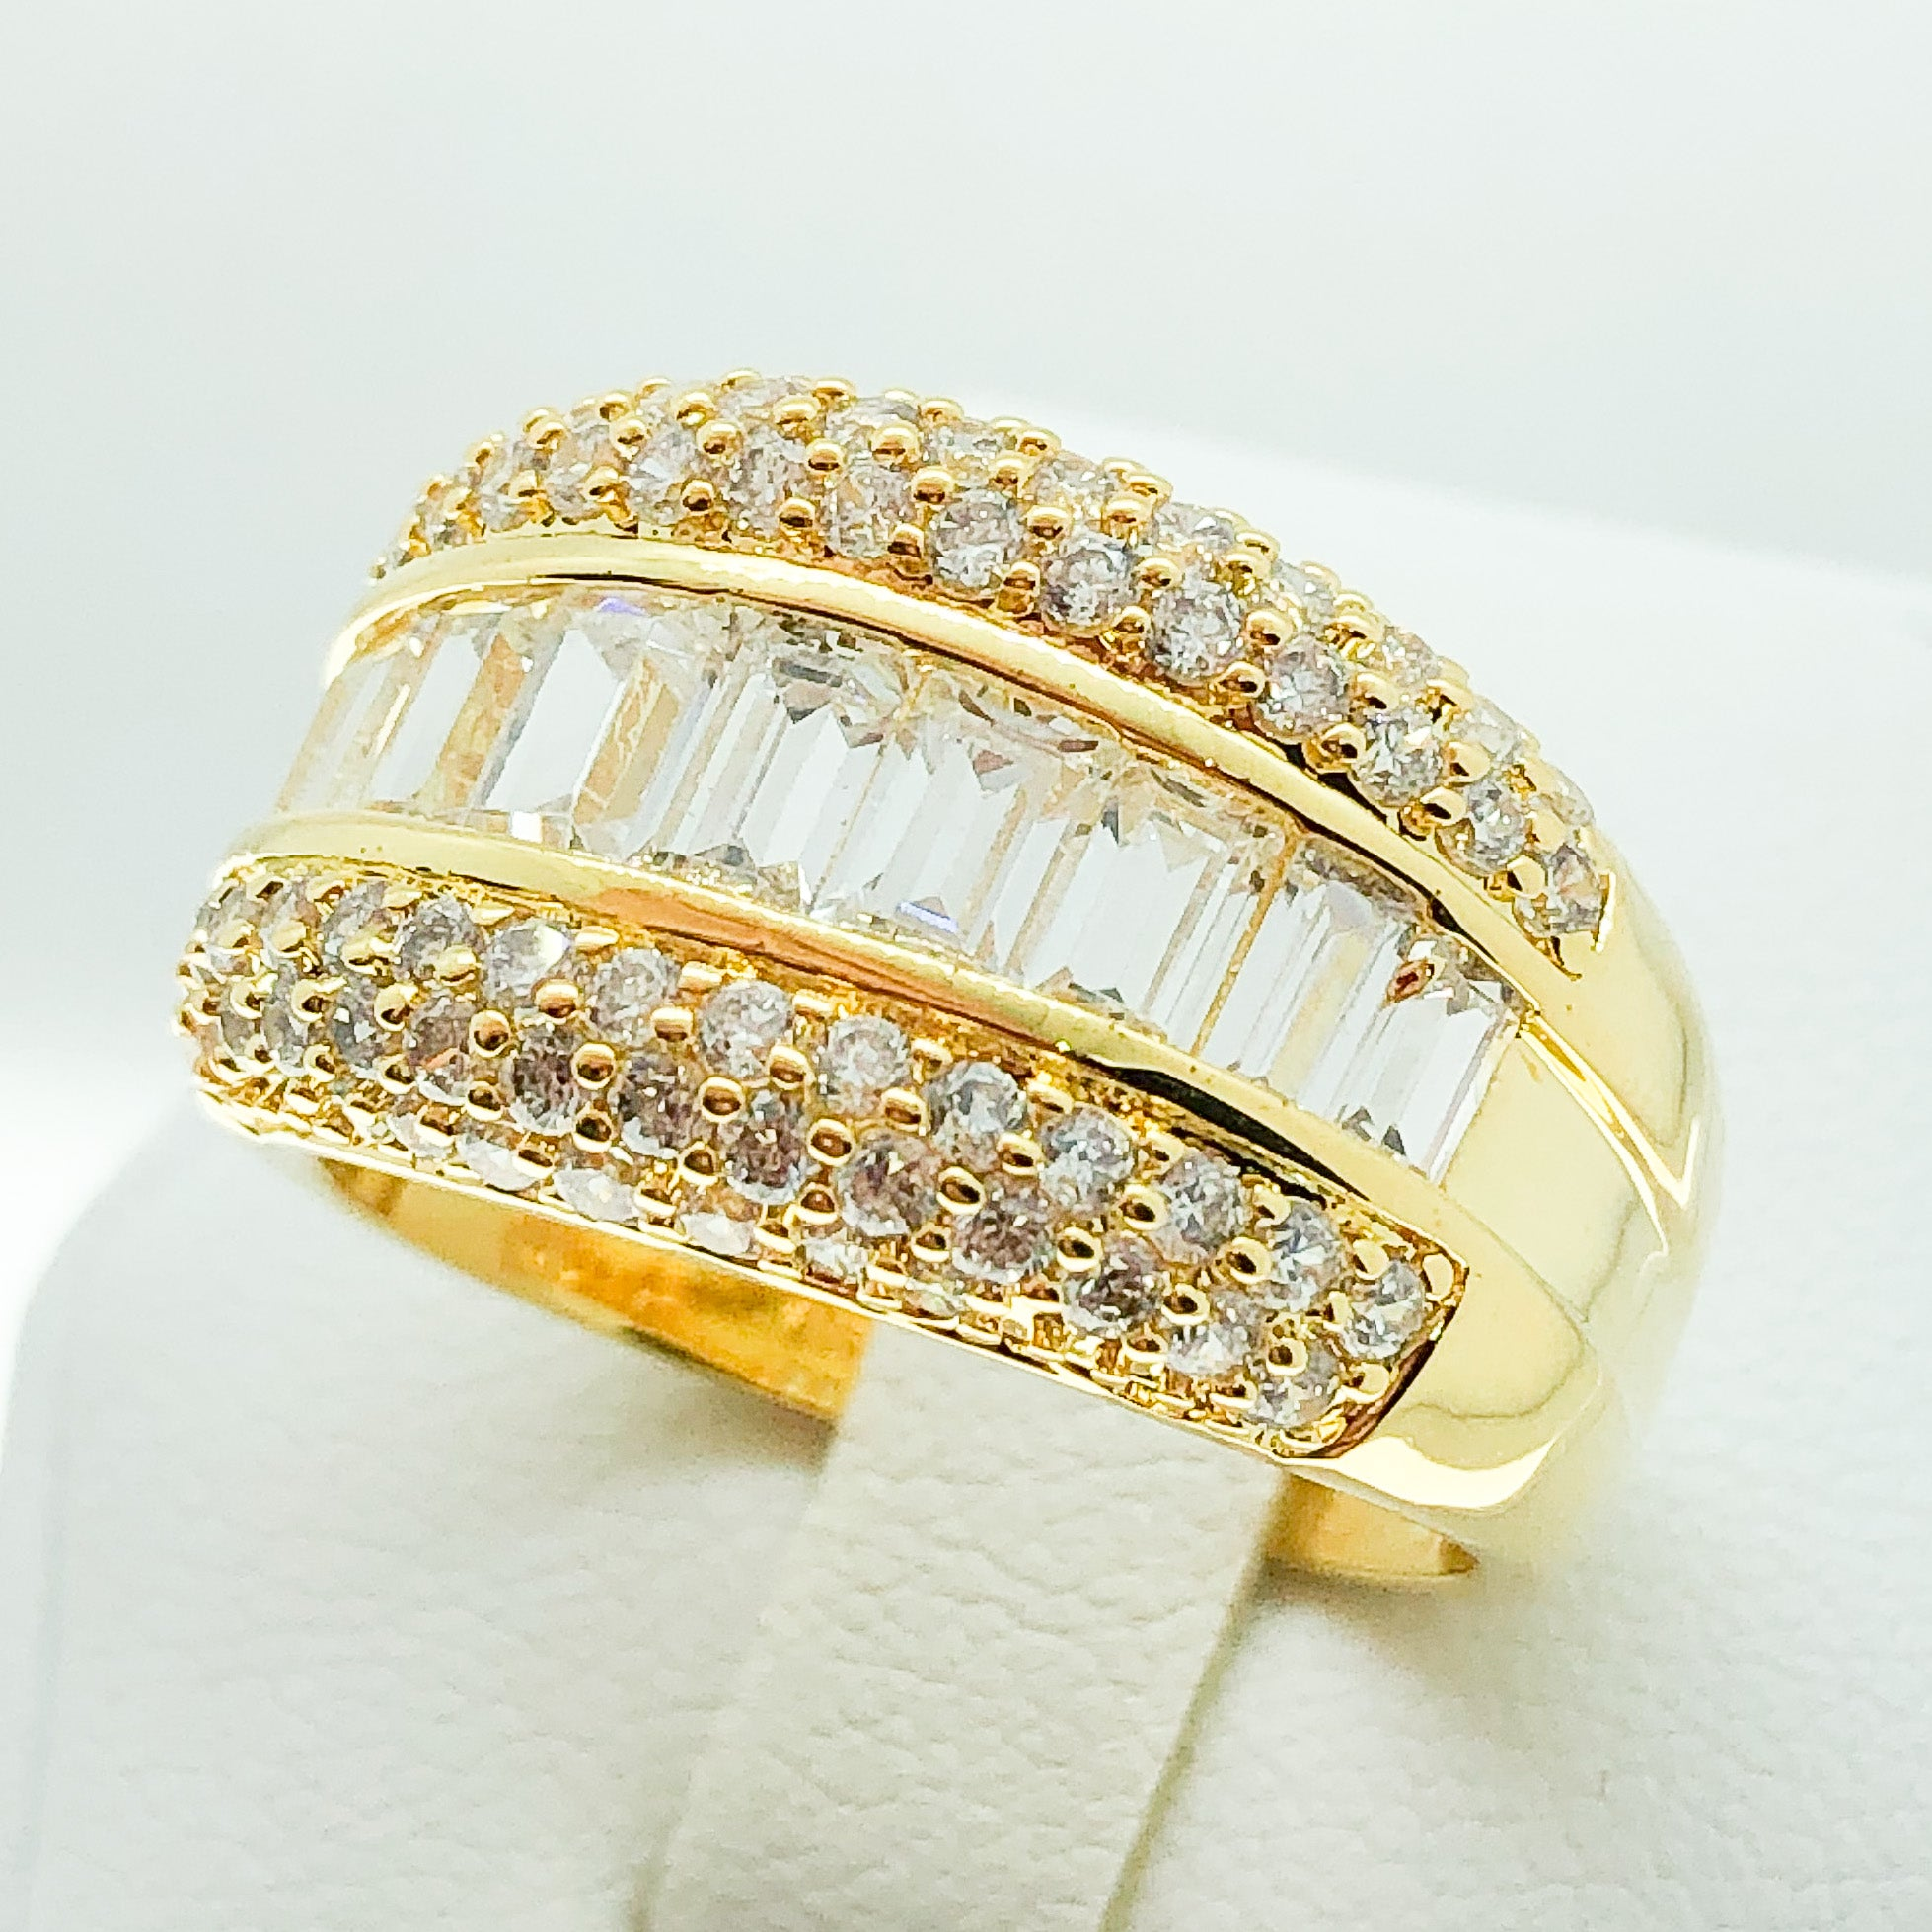 ID:R6999 Women 18K Yellow Gold GF Vintage Jewelry Engagement Wedding Baguette Eternity Band Ring